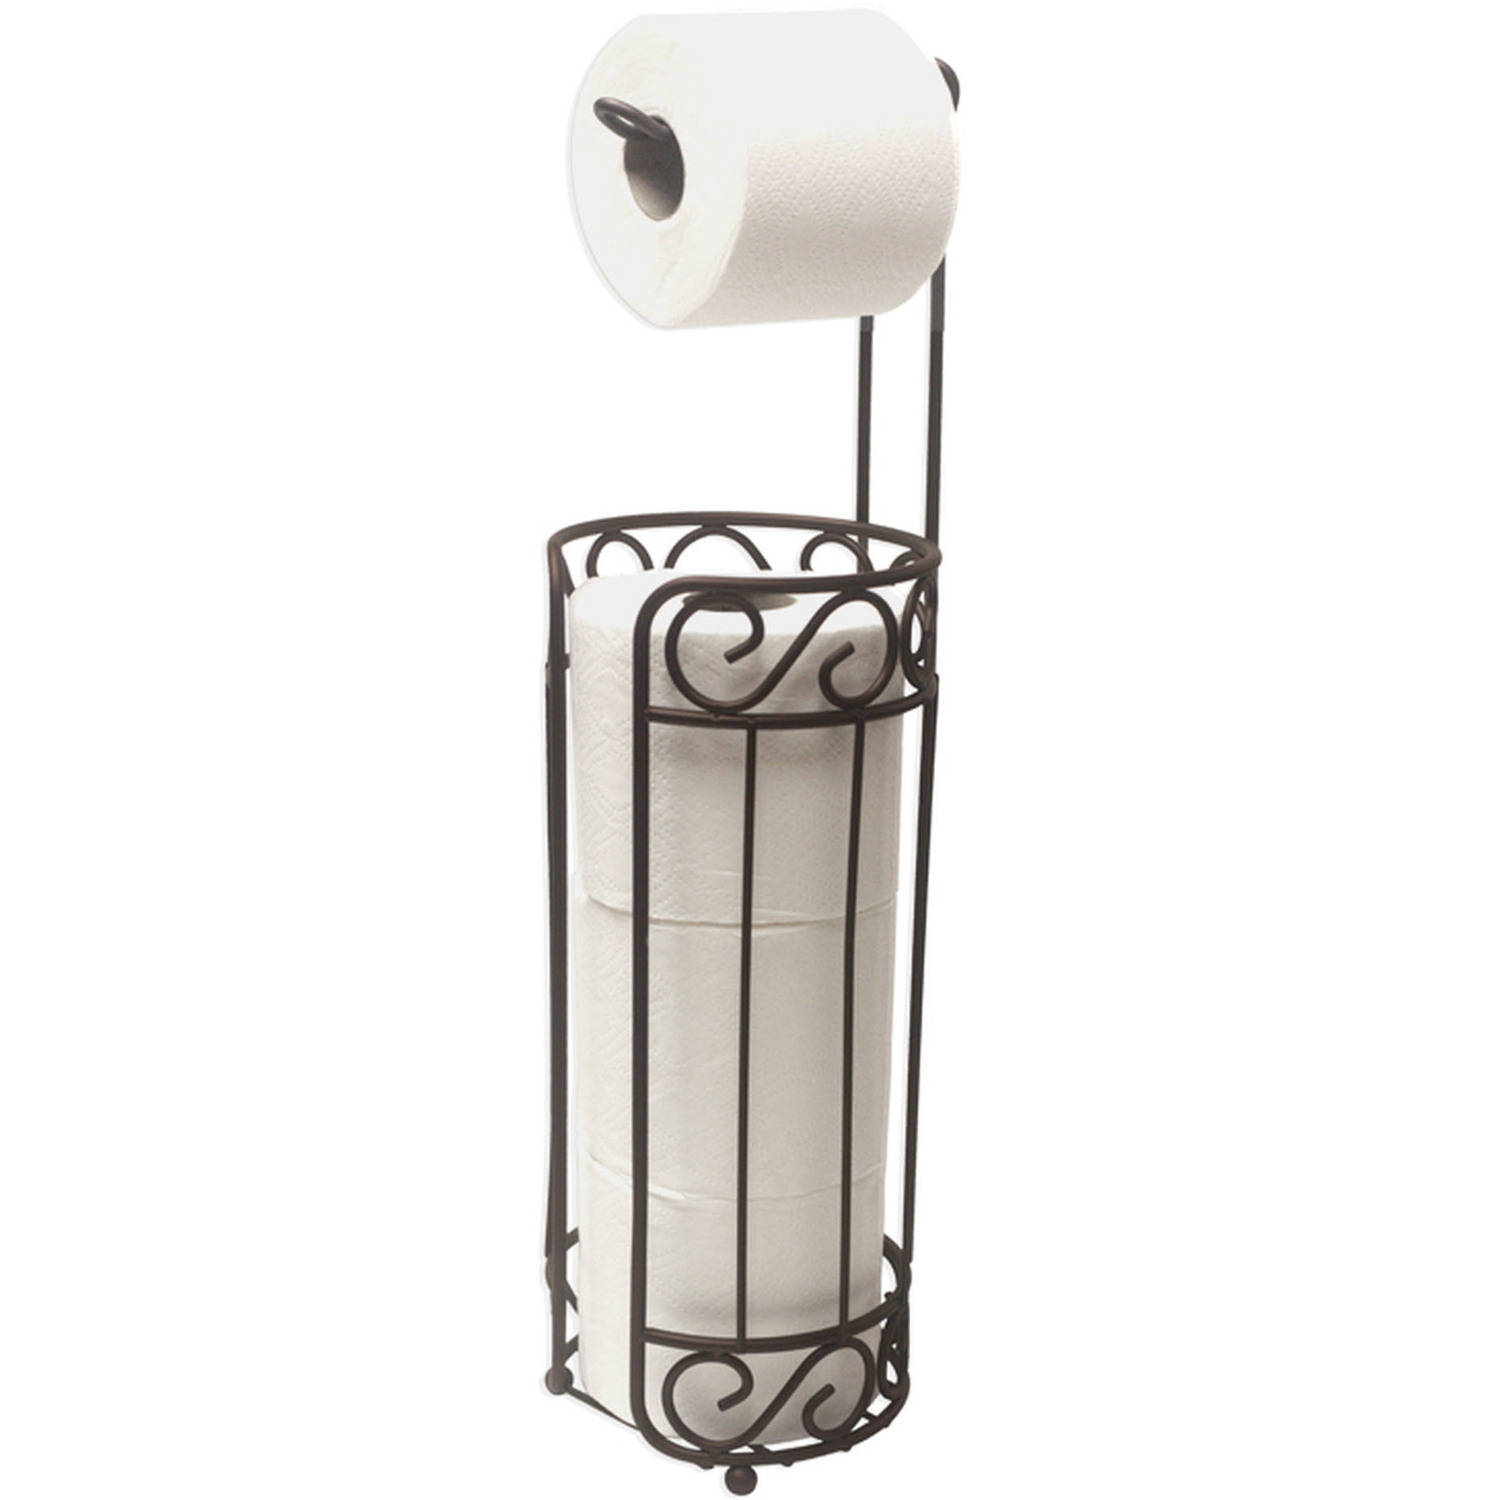 Wrought Iron Toilet Paper Holders